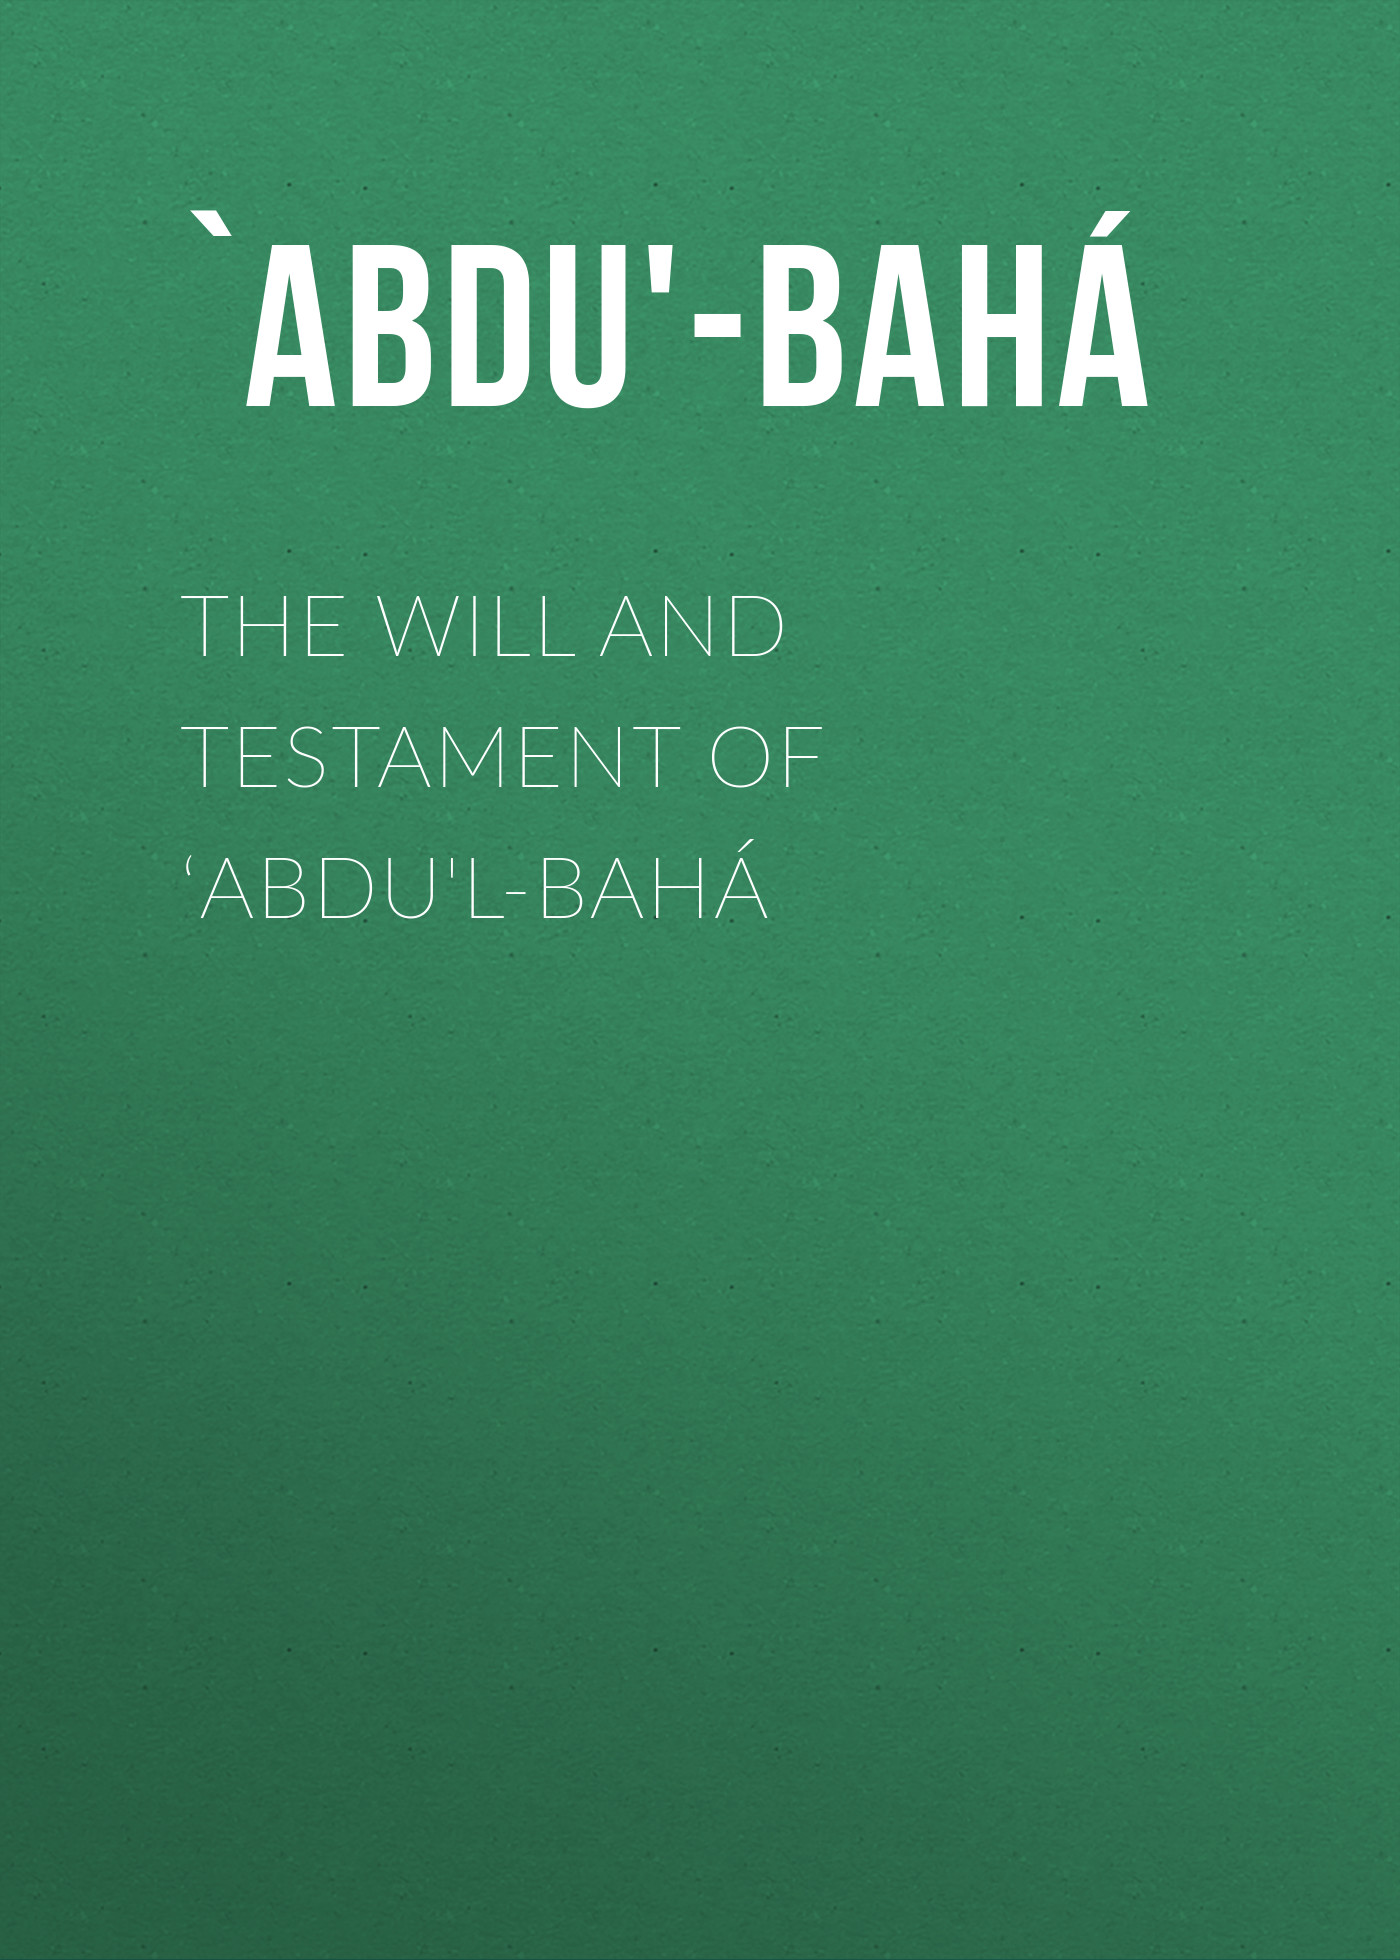 The Will And Testament of'Abdu'l-Bahá